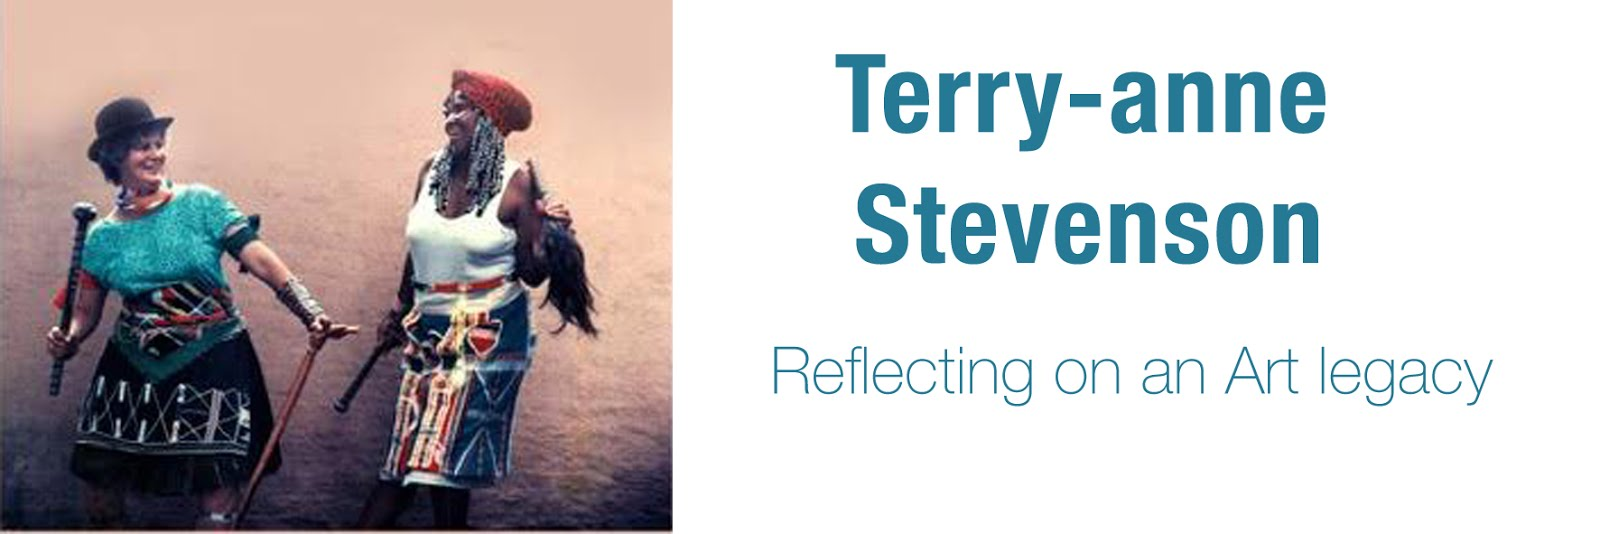 Terry-anne Stevenson: Reflecting on an Art legacy